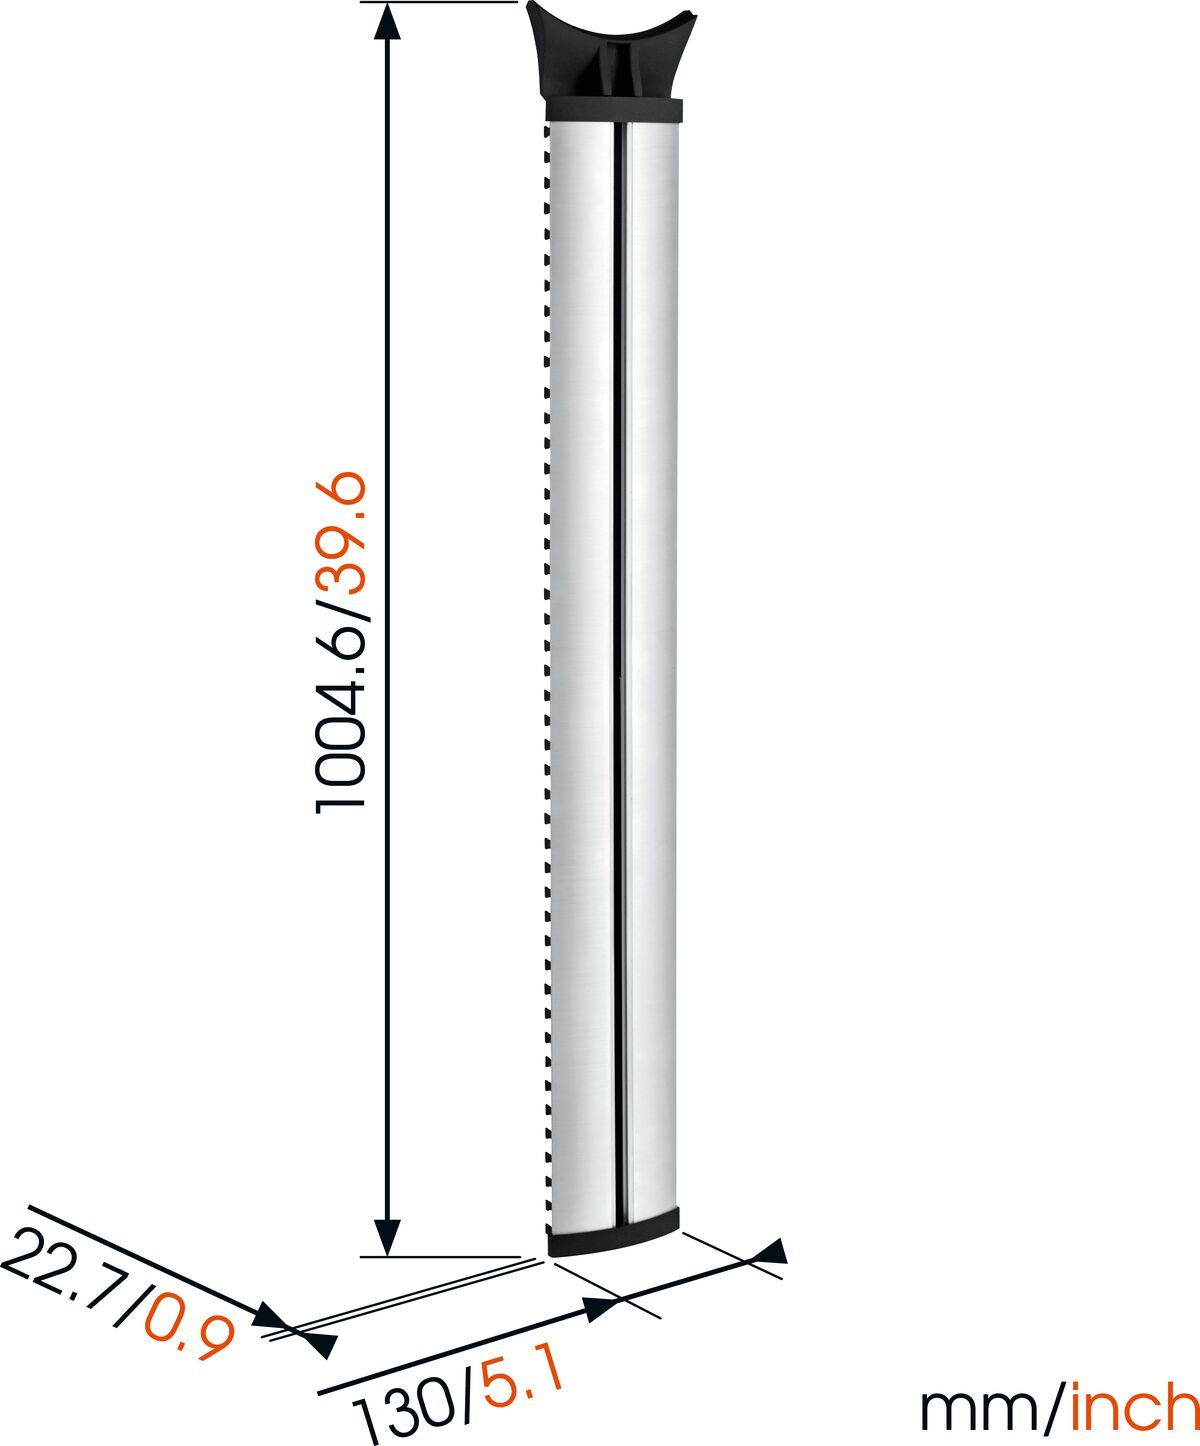 Vogel's NEXT 7840 Cable Column - Max. number of cables to hold: Up to 10 cables - Length: 100 cm - Dimensions